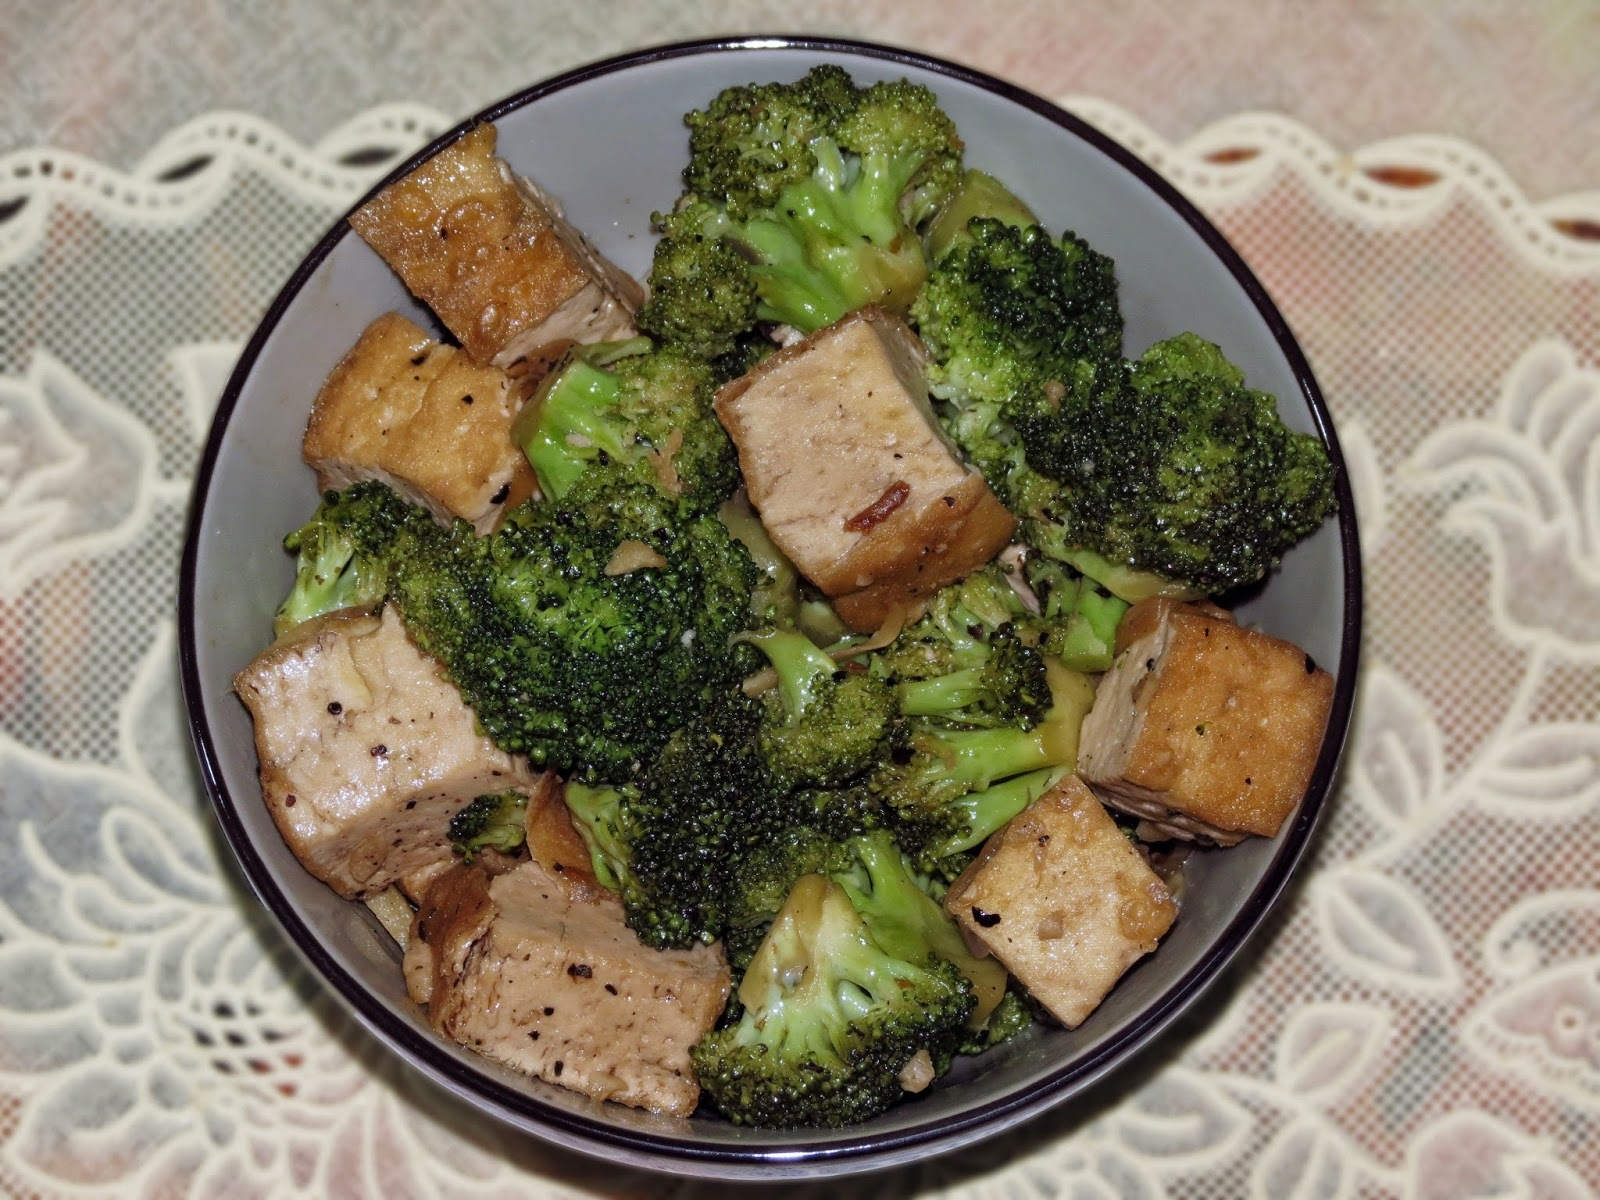 Tofu & Broccoli Stir Fry